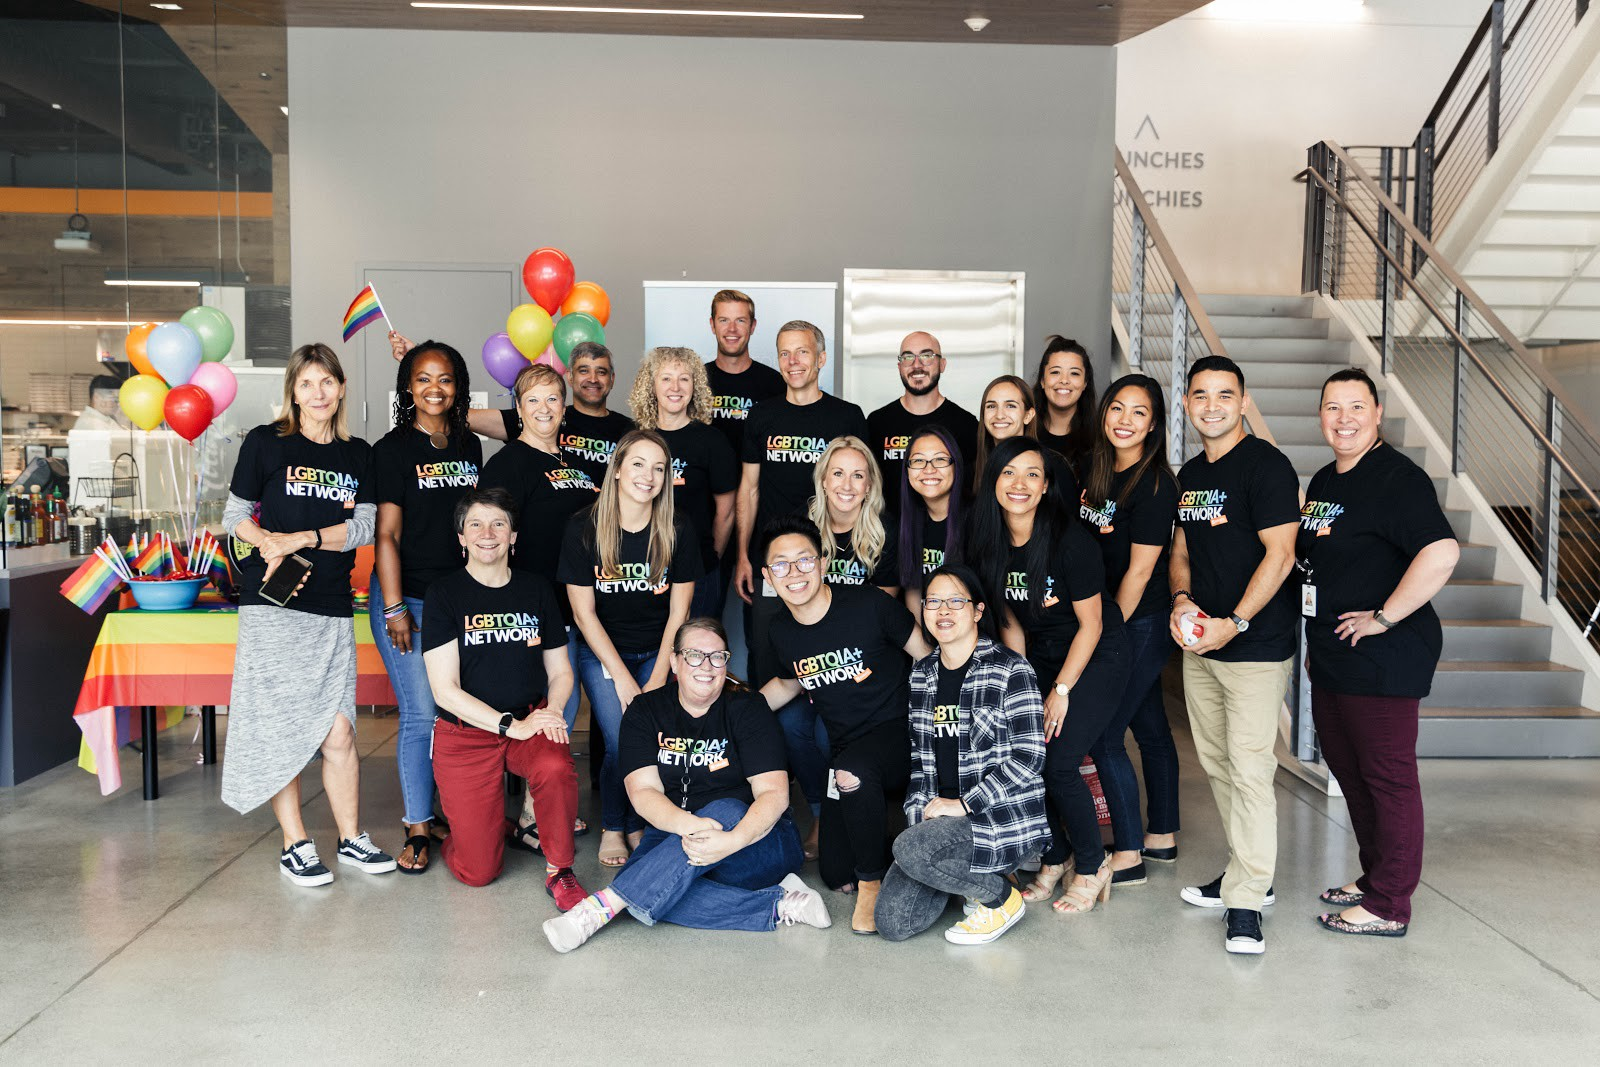 Members of the Palo Alto Networks LGBTQIA+ Employee Network